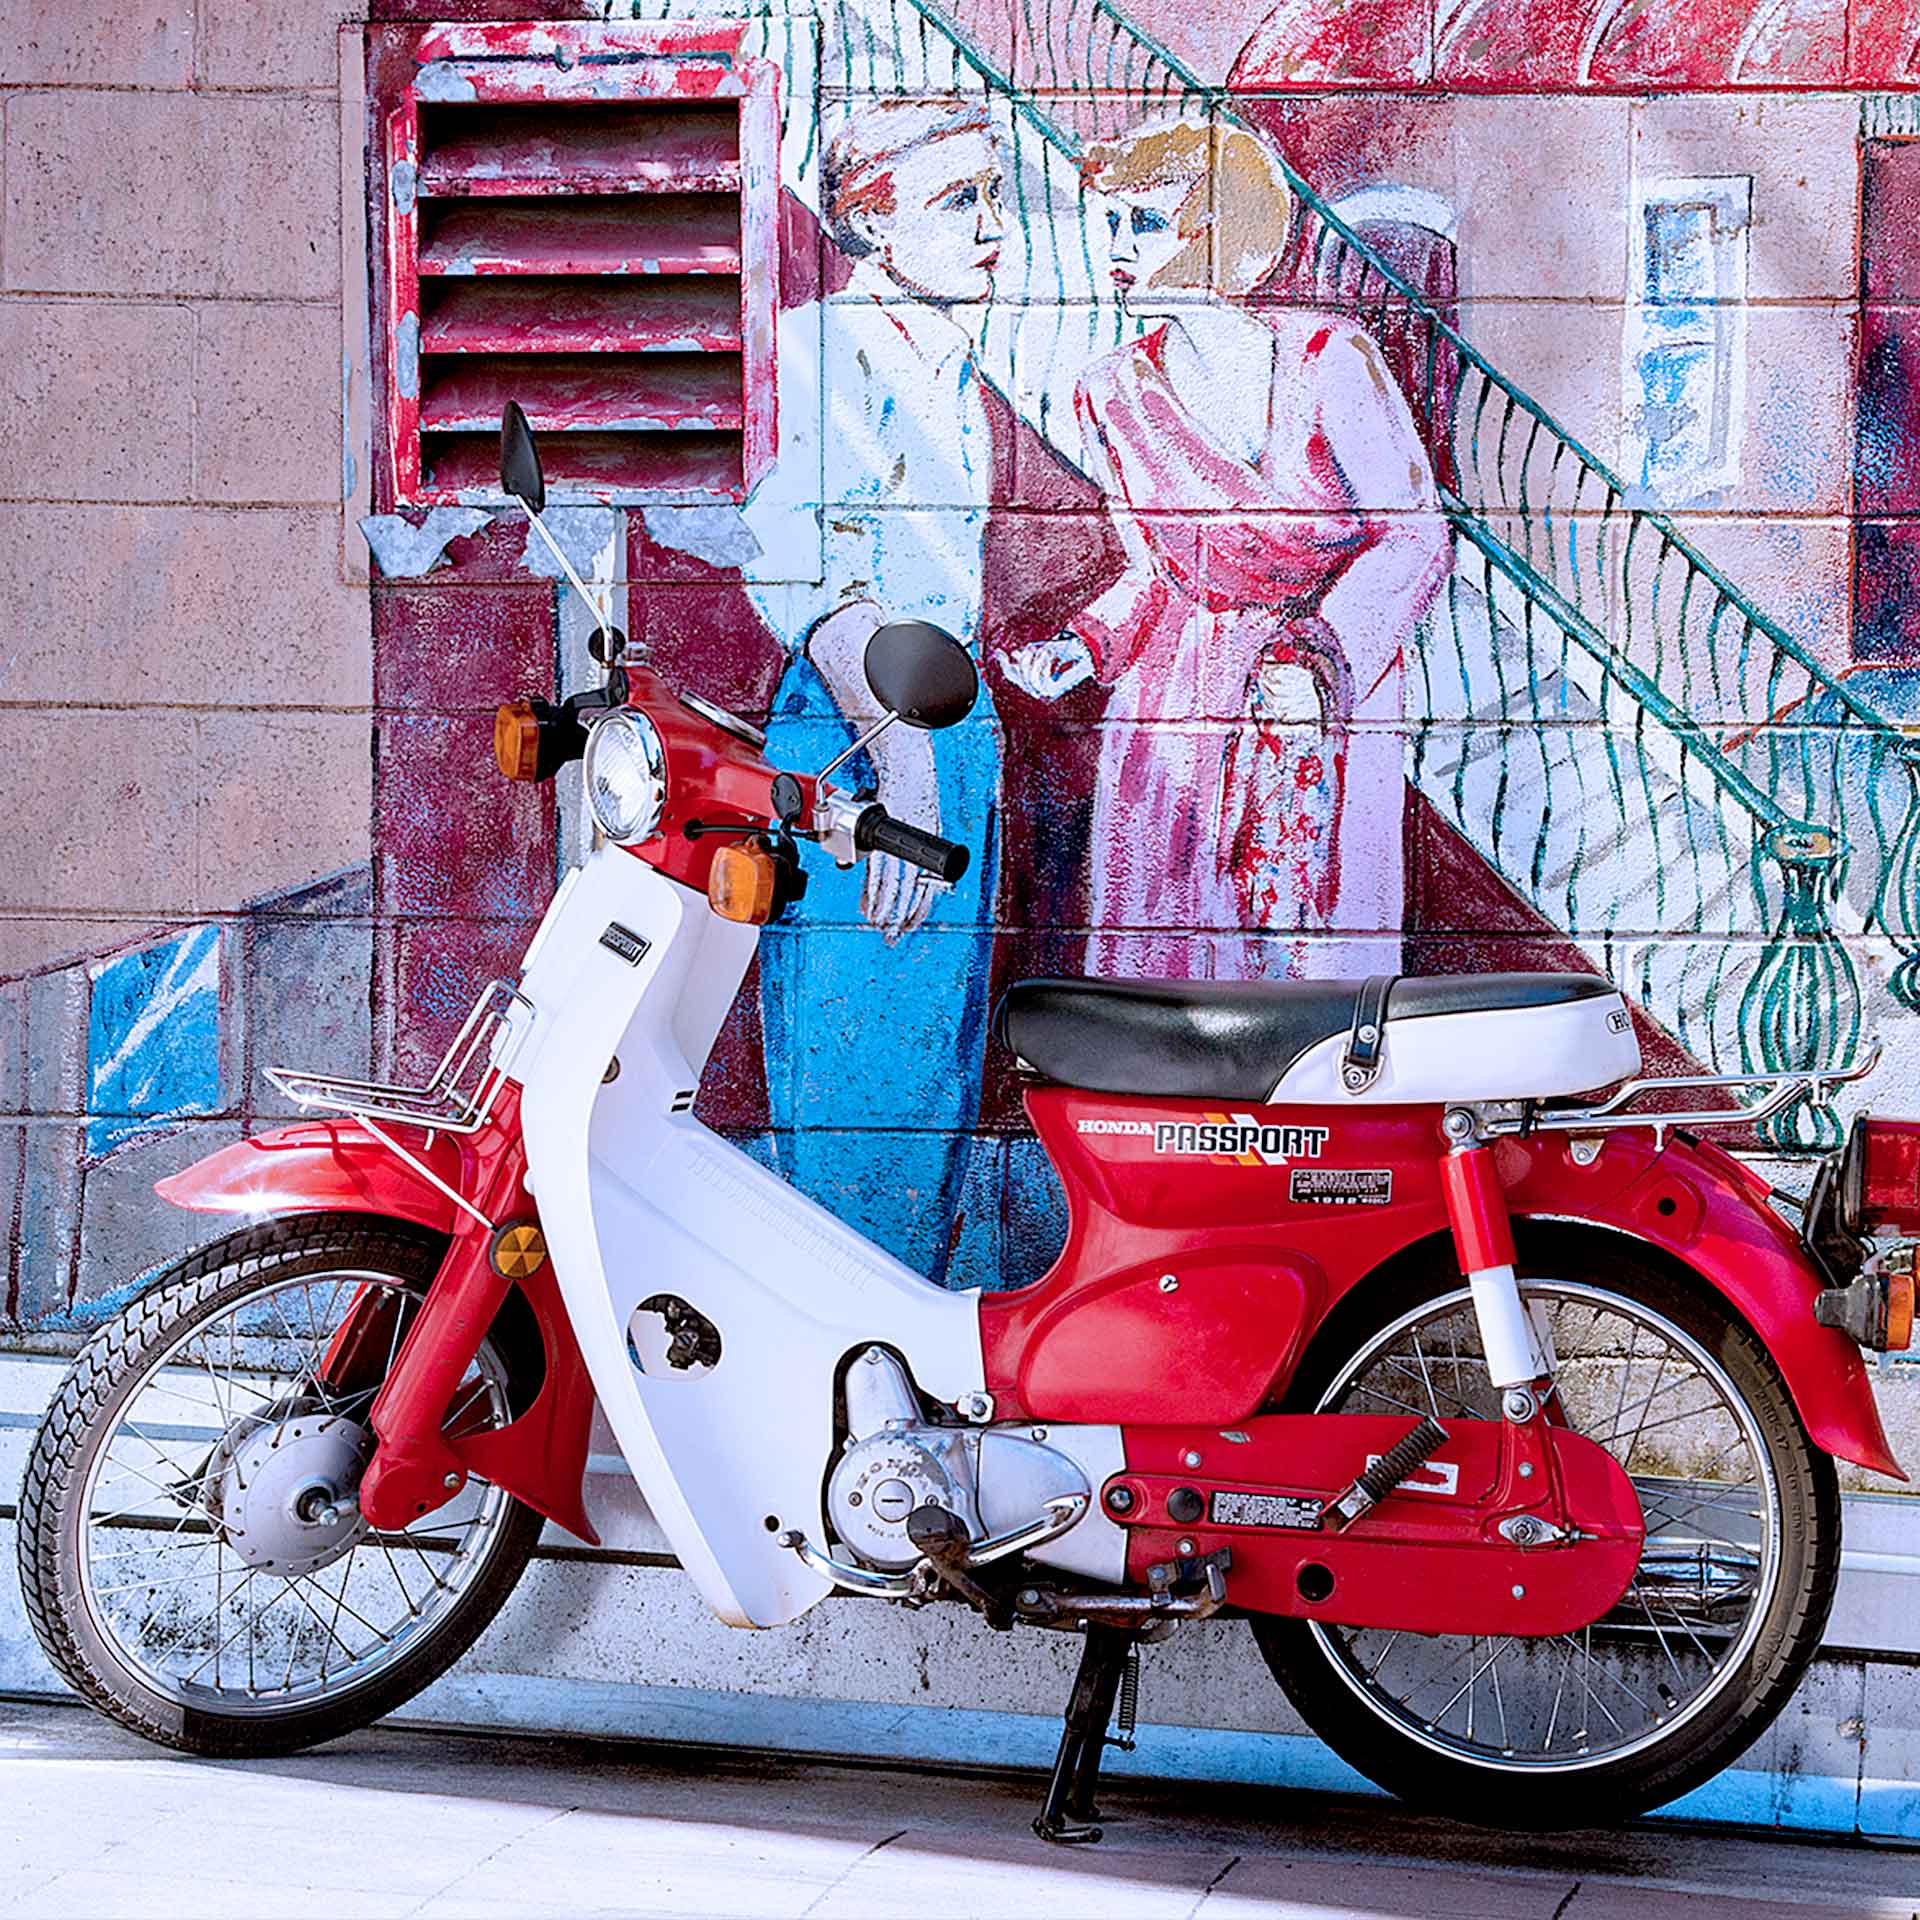 Red moped against colorful mural